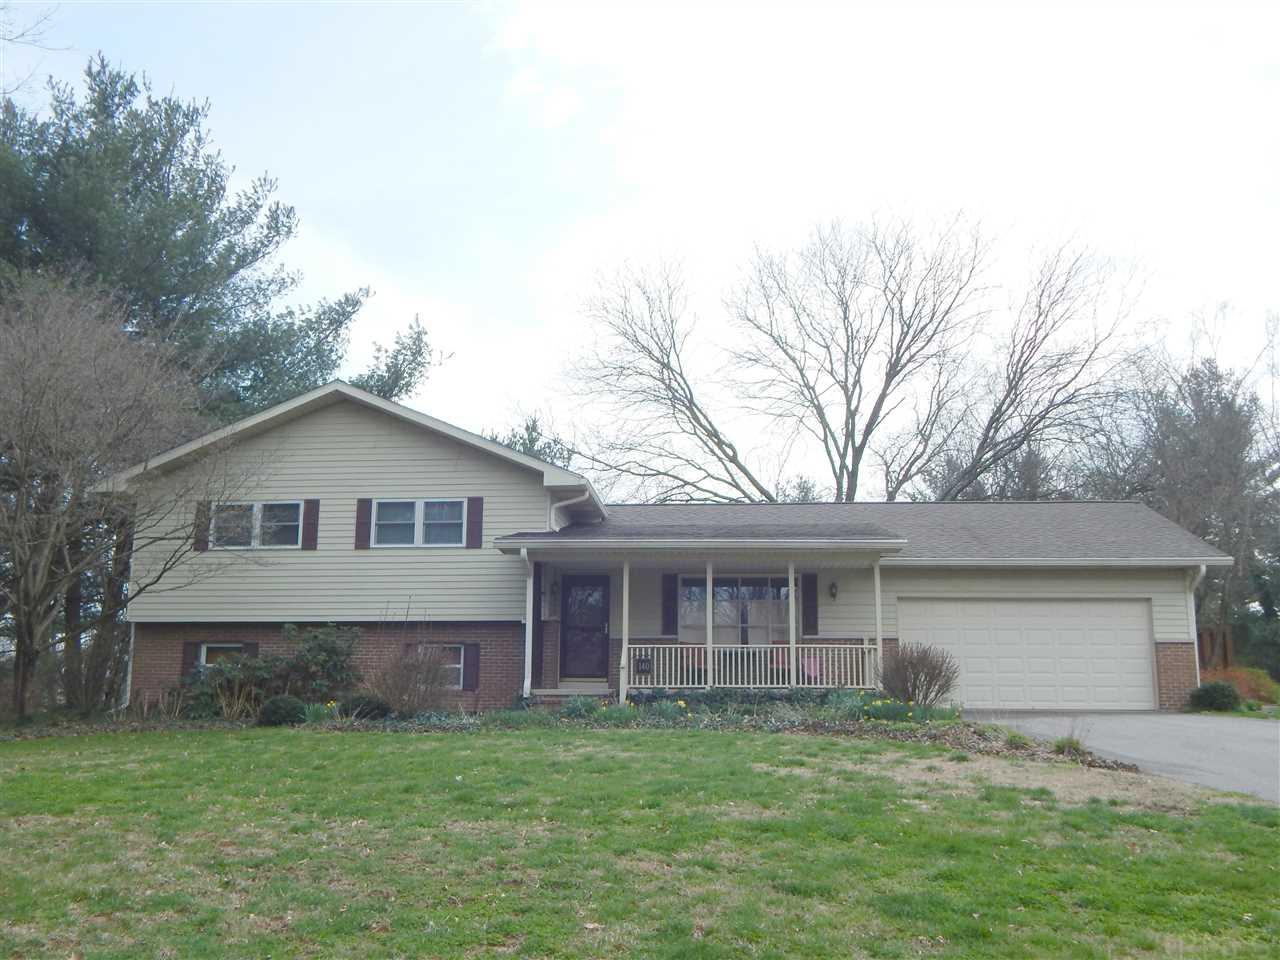 140 Miami Dr, Bedford, IN - USA (photo 1)